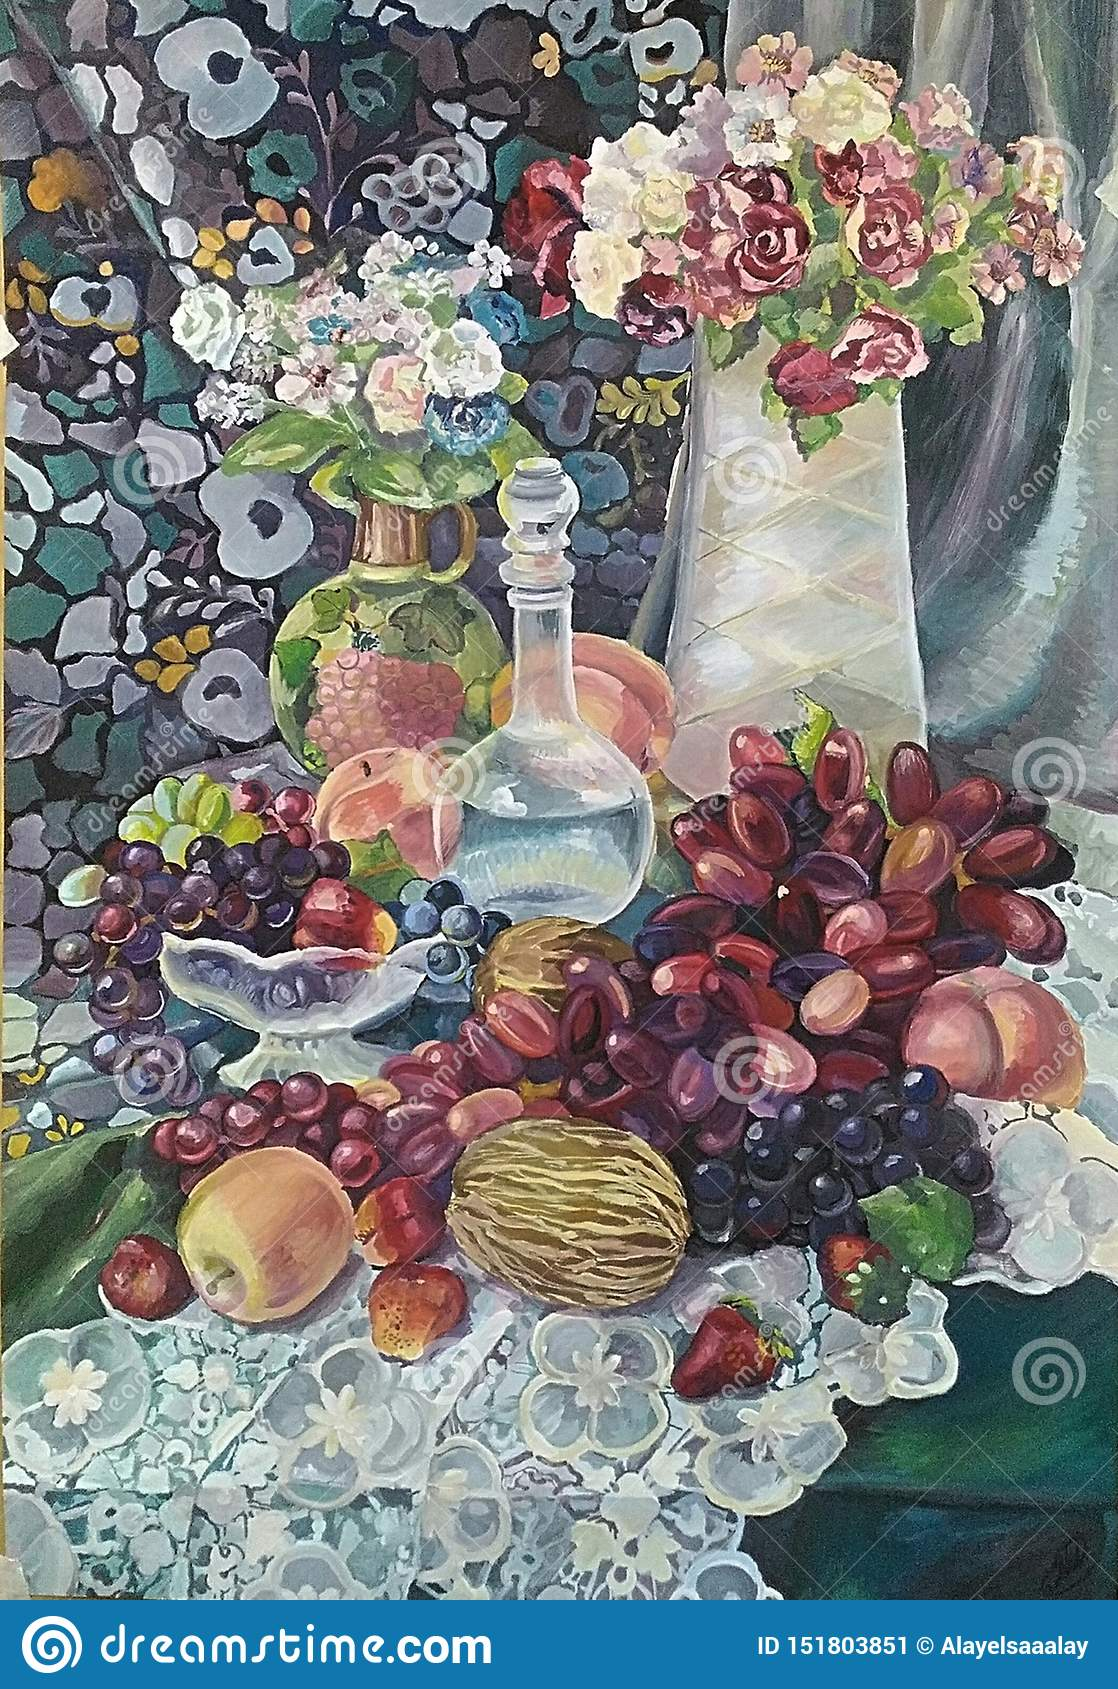 Still-life painting with the bouquet and juicy fruits.